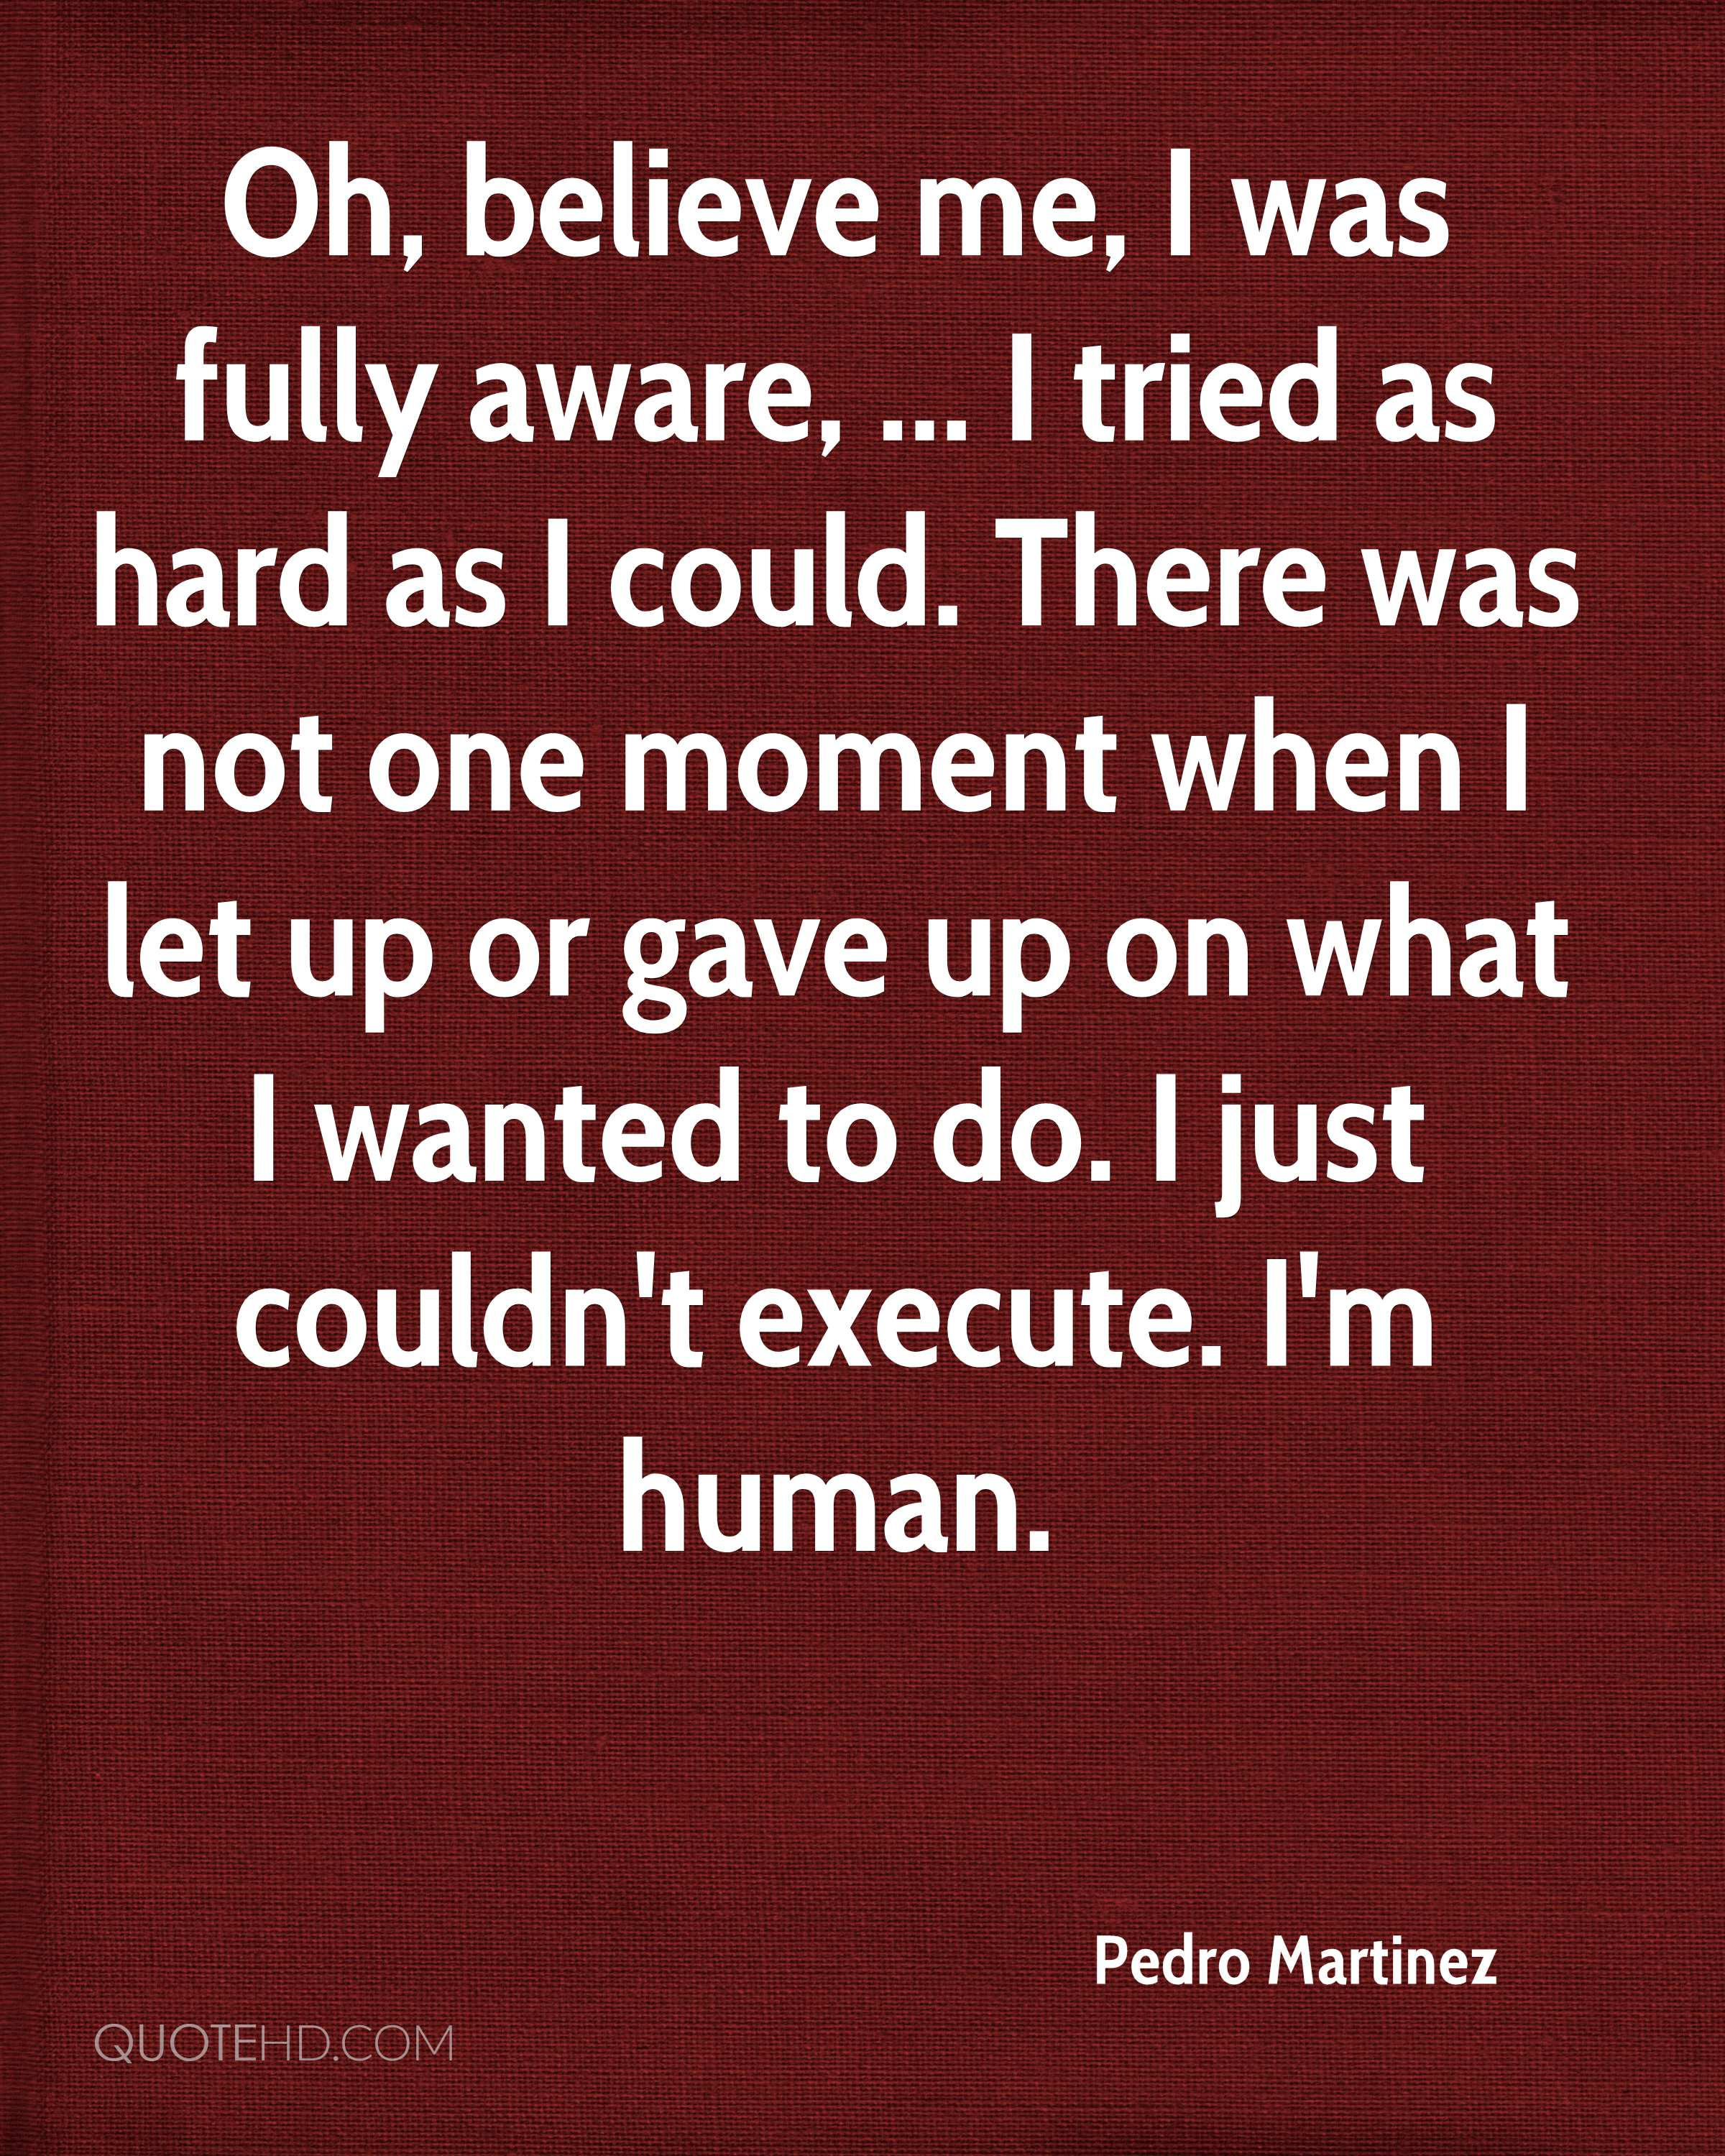 Oh, believe me, I was fully aware, ... I tried as hard as I could. There was not one moment when I let up or gave up on what I wanted to do. I just couldn't execute. I'm human.